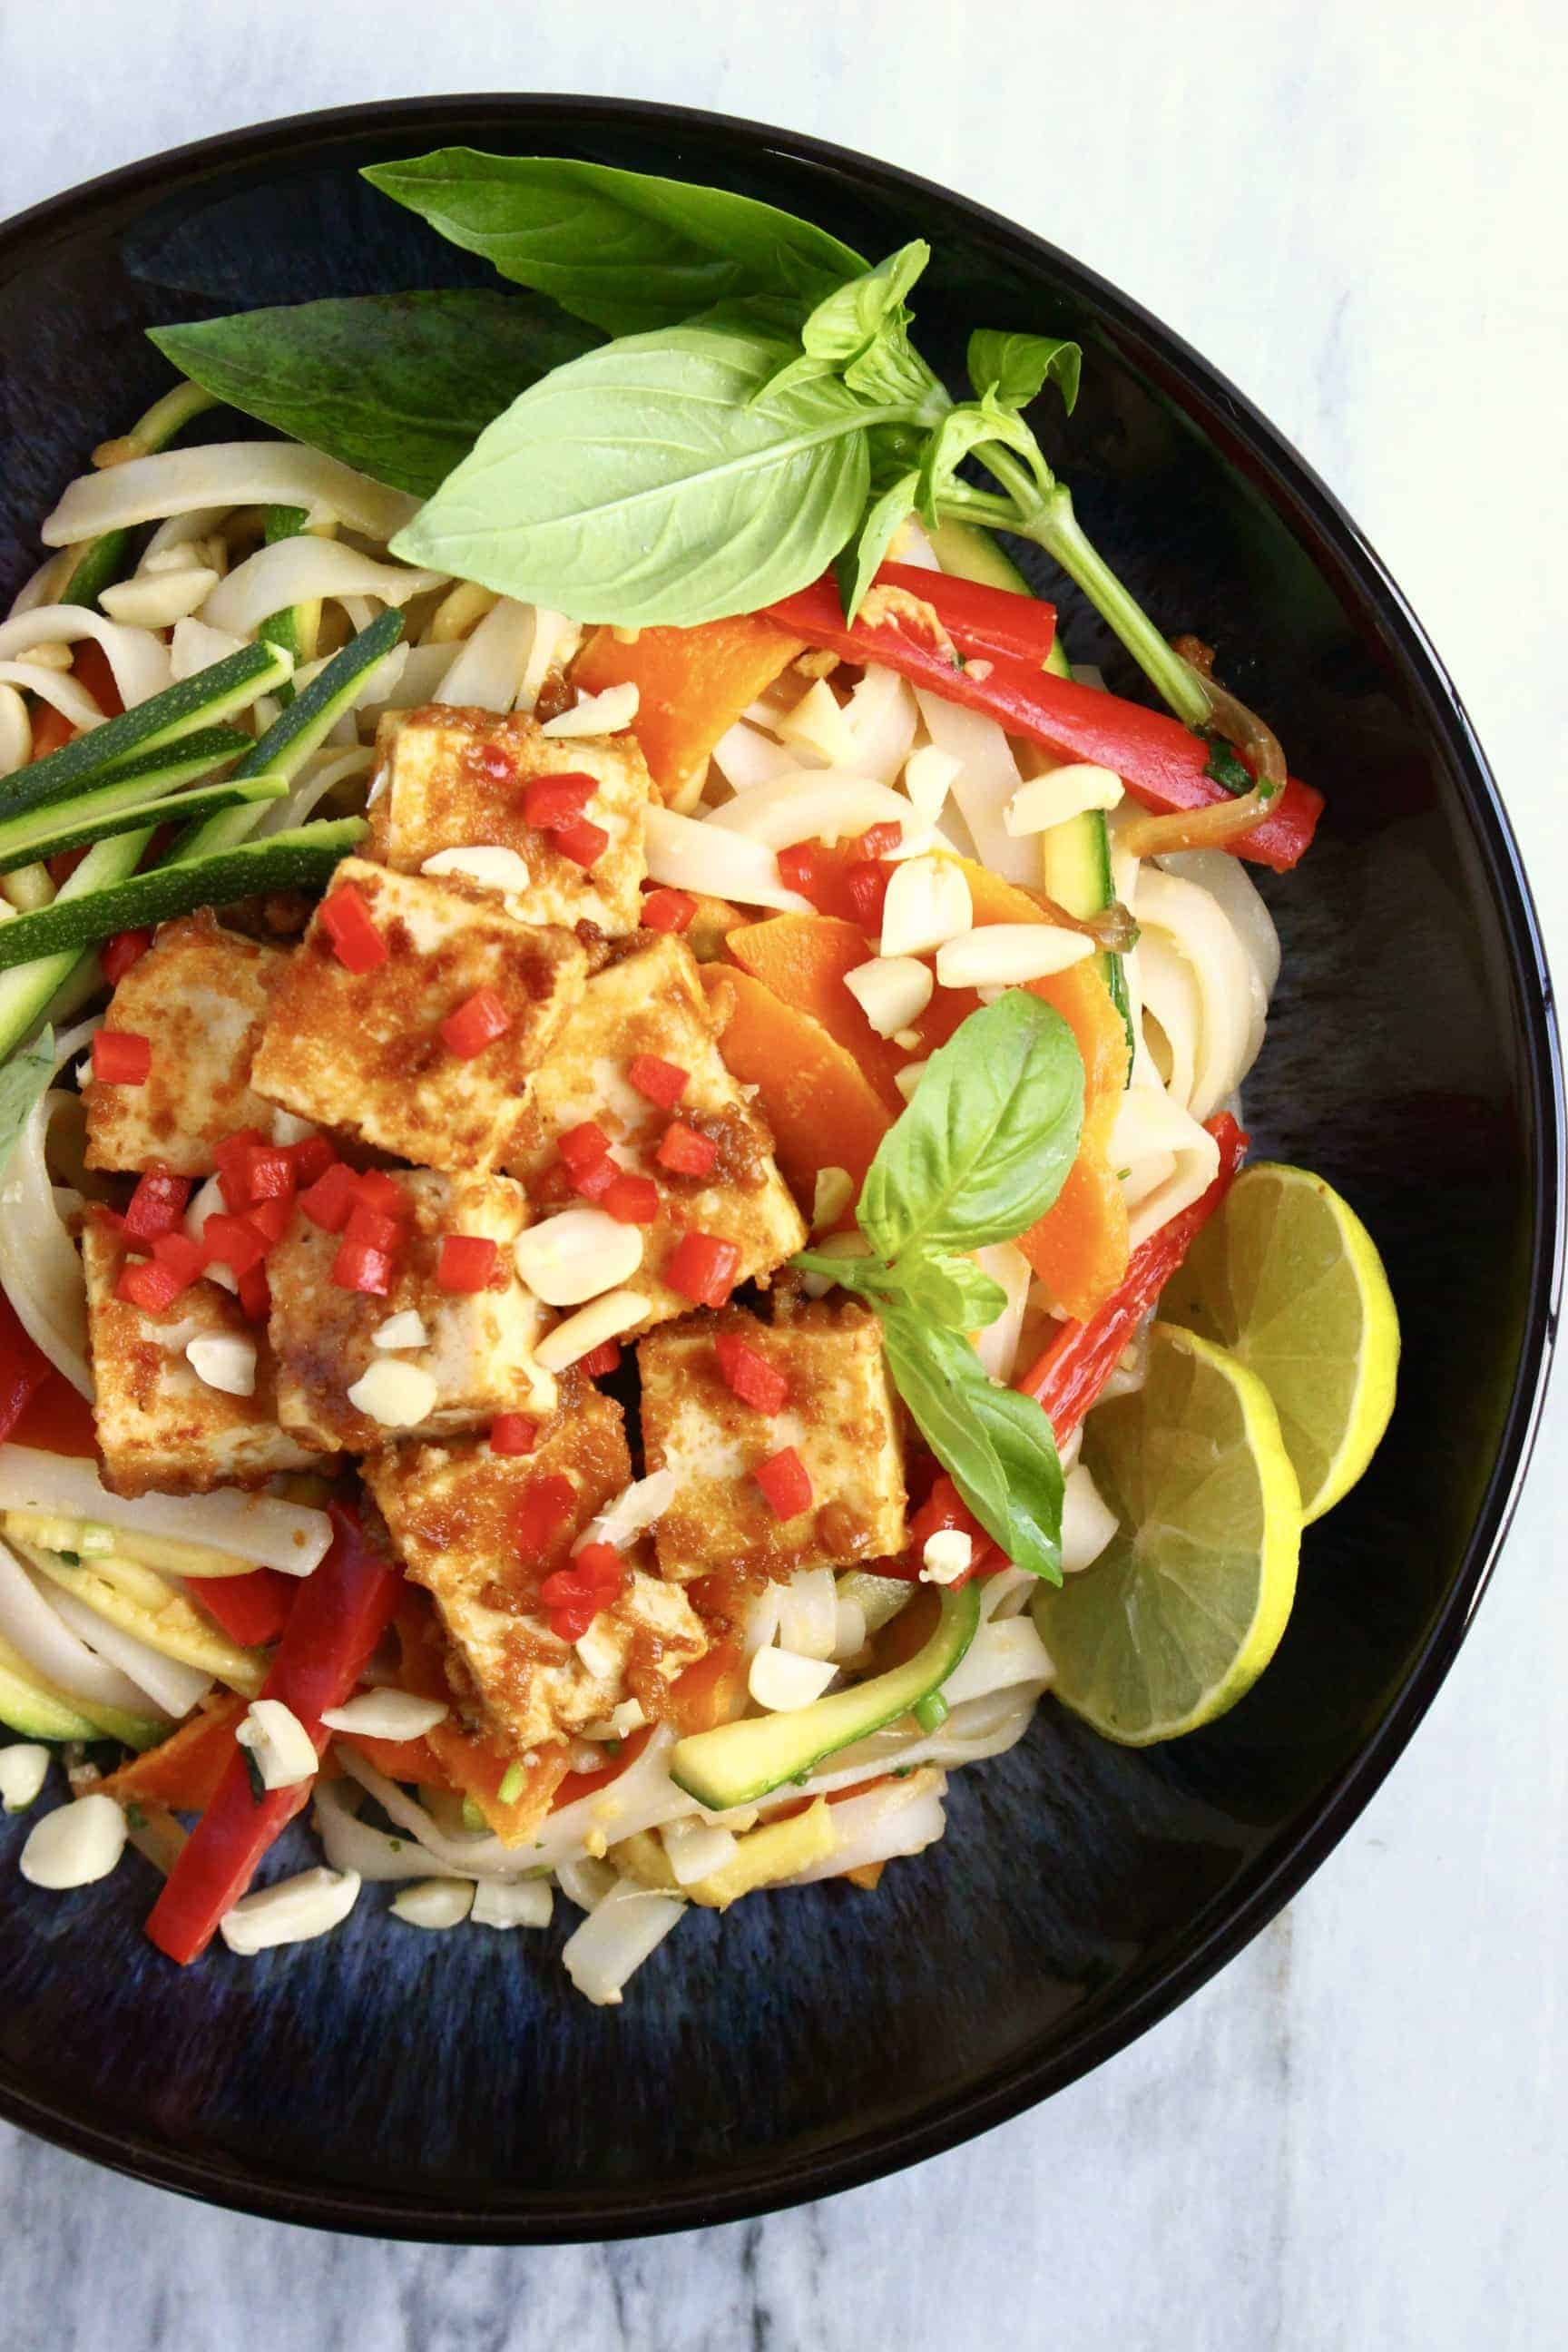 Vegan tofu pad Thai with vegetables and herbs and chopped peanuts in a black bowl